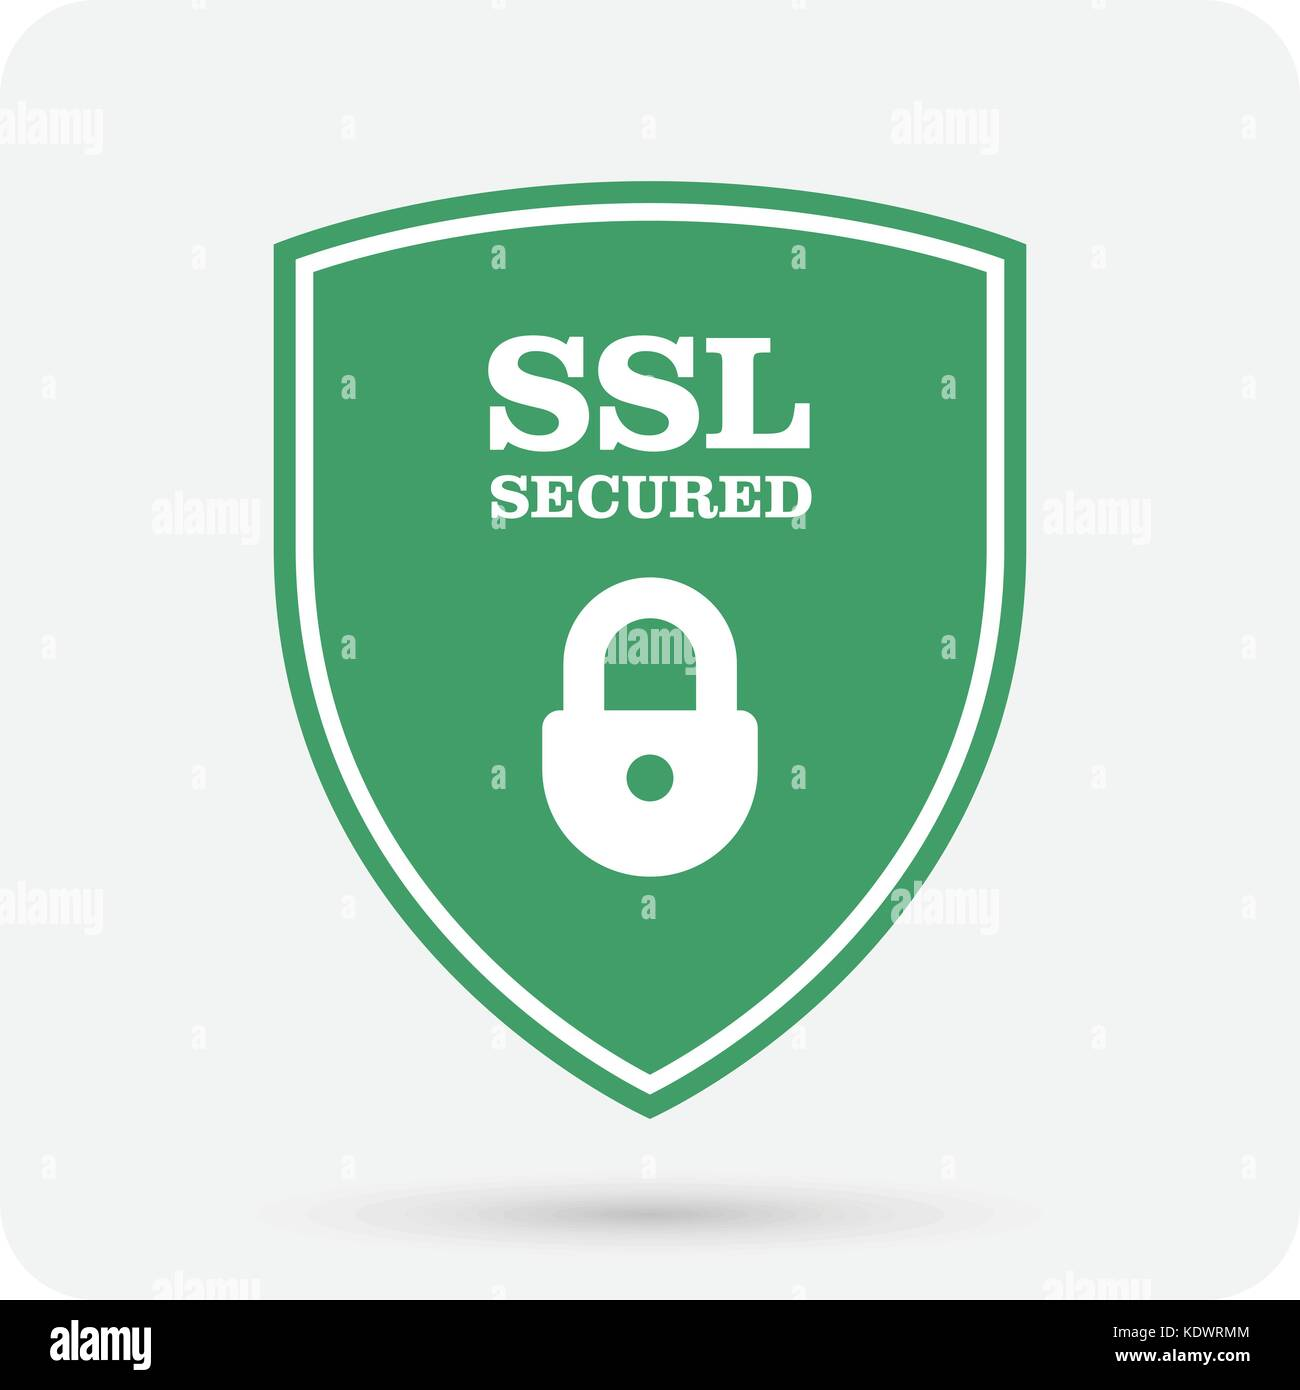 Secure website symbol images symbol and sign ideas ssl certificate shield with padlock secure website emblem stock ssl certificate shield with padlock secure website biocorpaavc